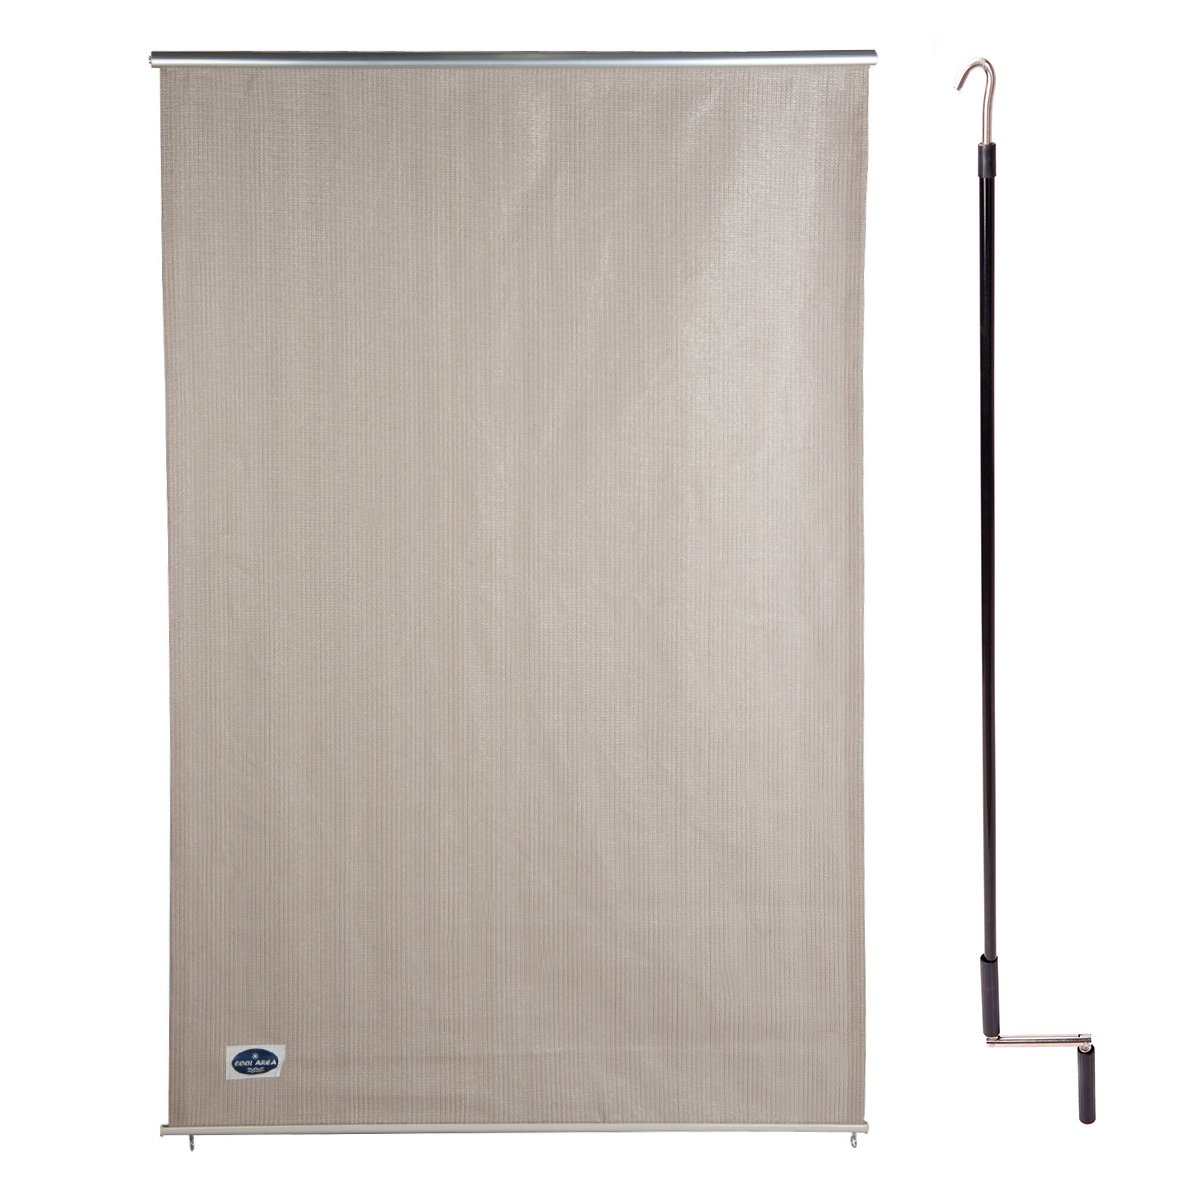 Cool Area 6ft x 4ft Outdoor Cordless Roller Sun Shade for Proch Patio in color Sesame